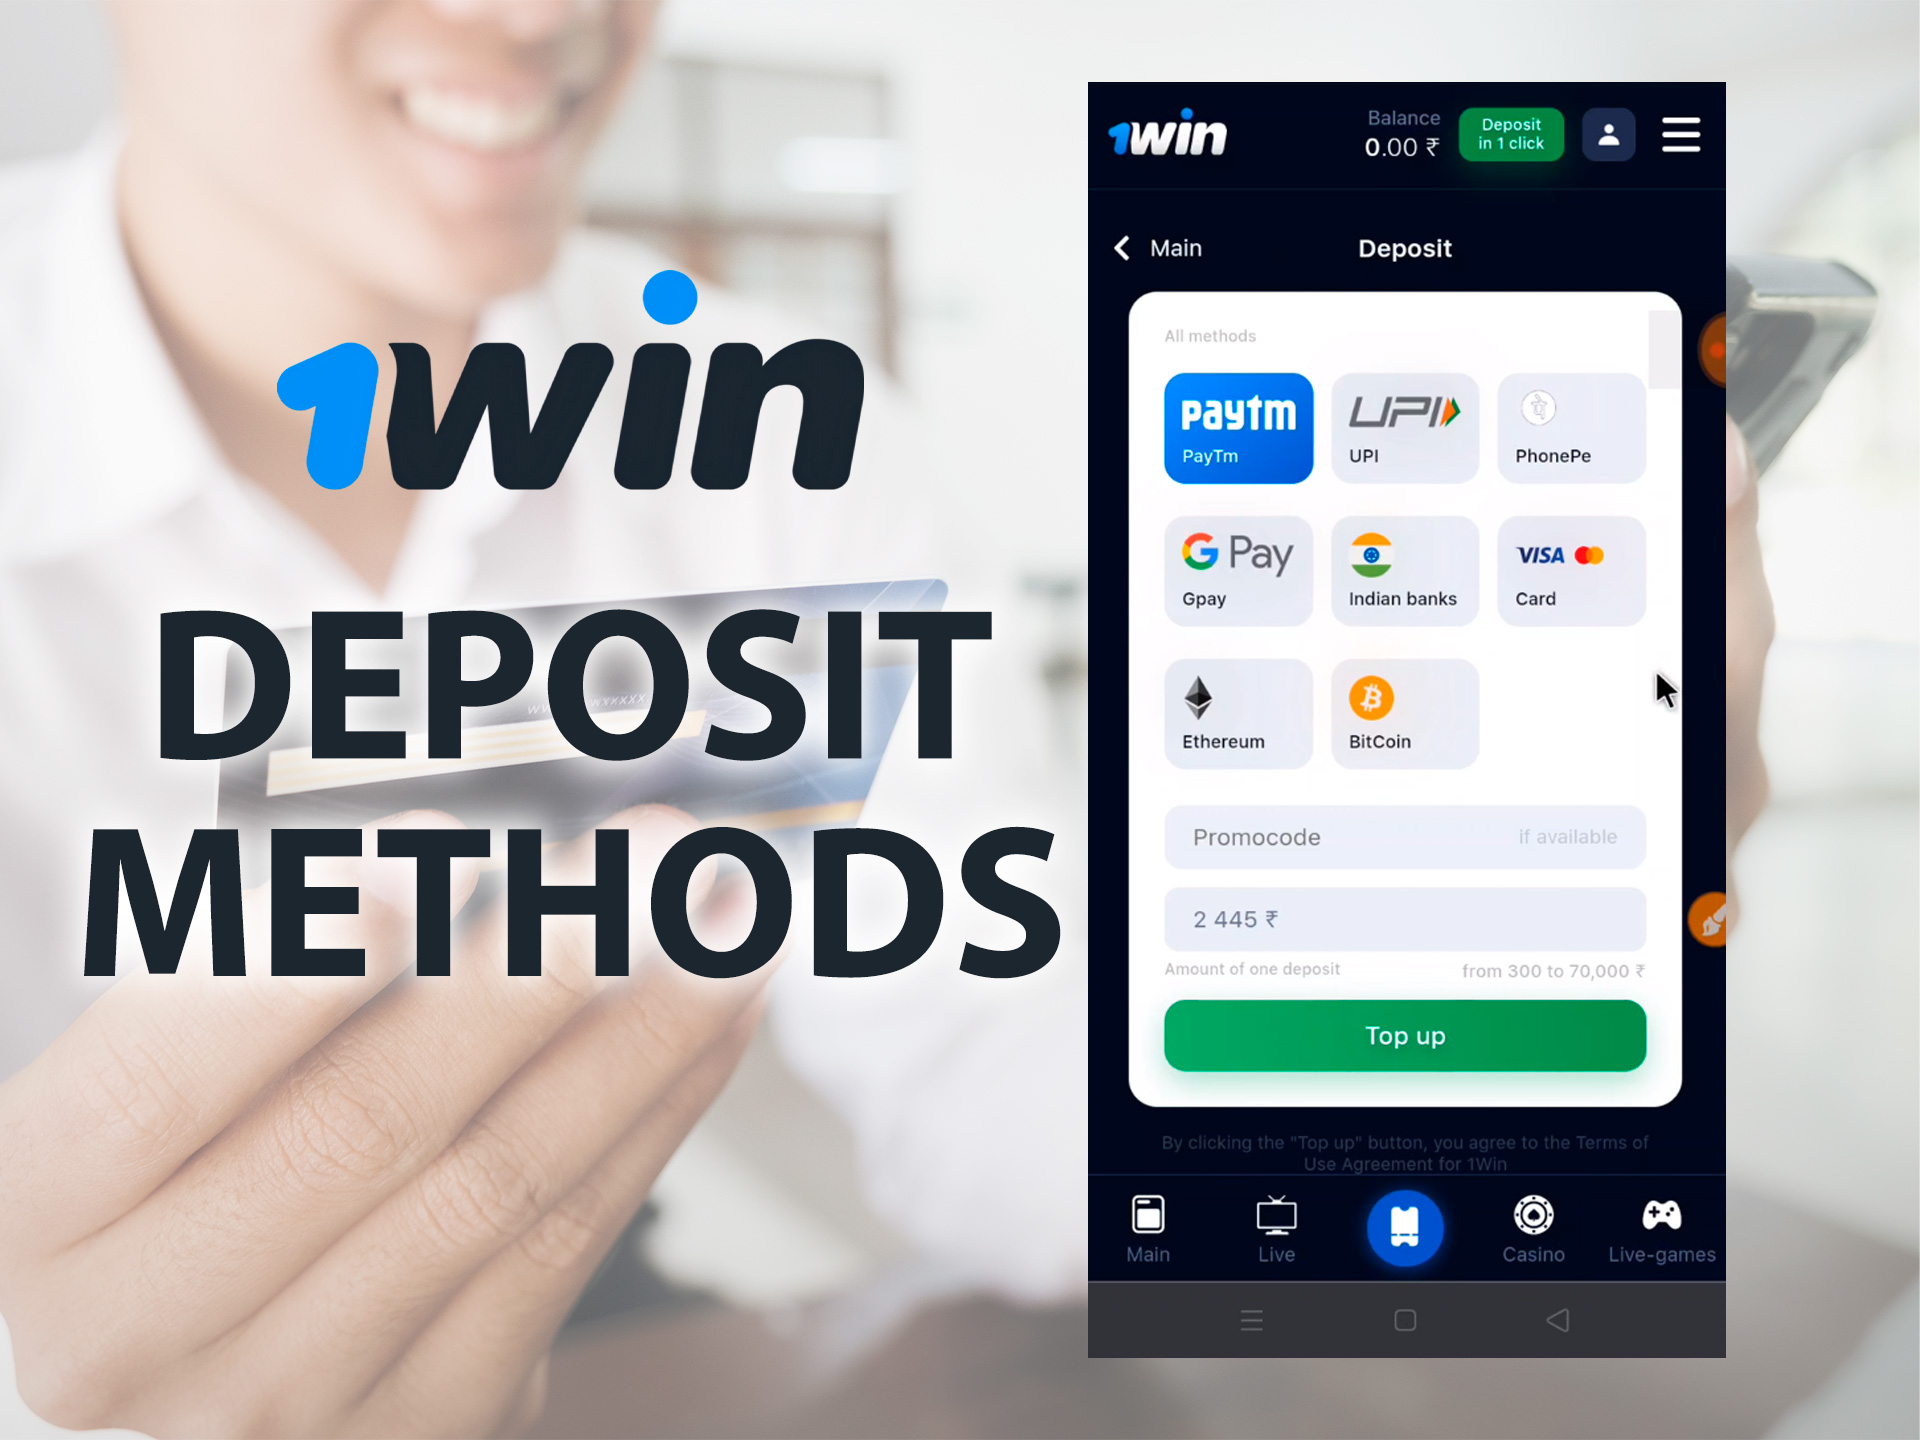 1win offers many convenient deposit methods for Indian players.